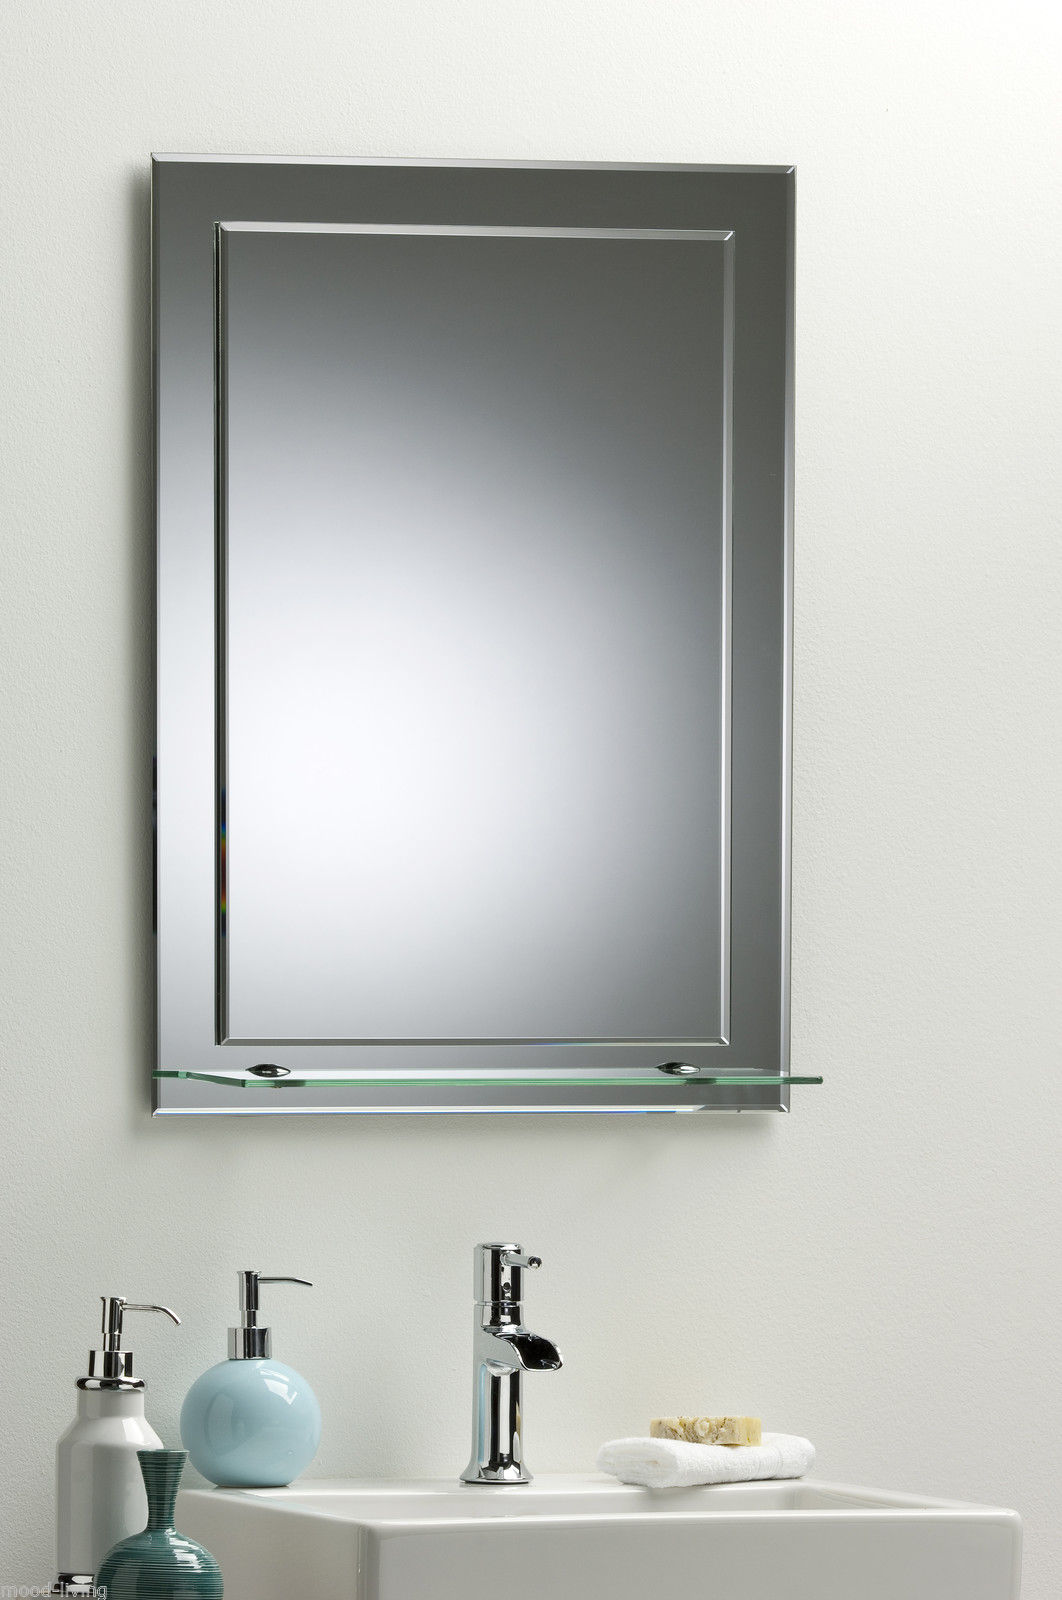 Bathroom Mirror On Mirror Elegant Rectangular With Shelf Wall Mounted Plain Ebay